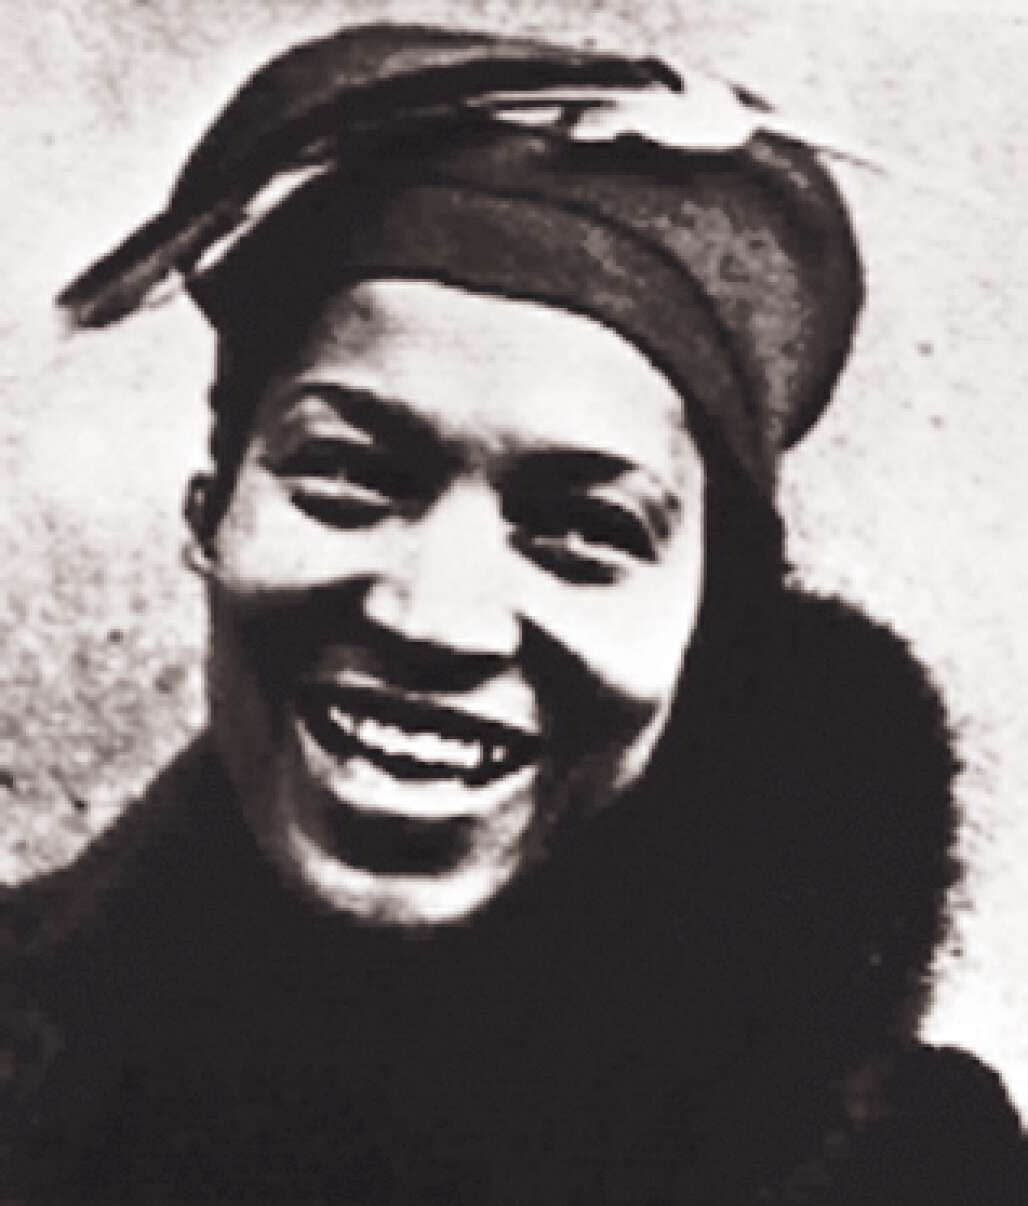 Zora Neale Hurston is likely the most significant collector and interpreter of Southern African-American culture.